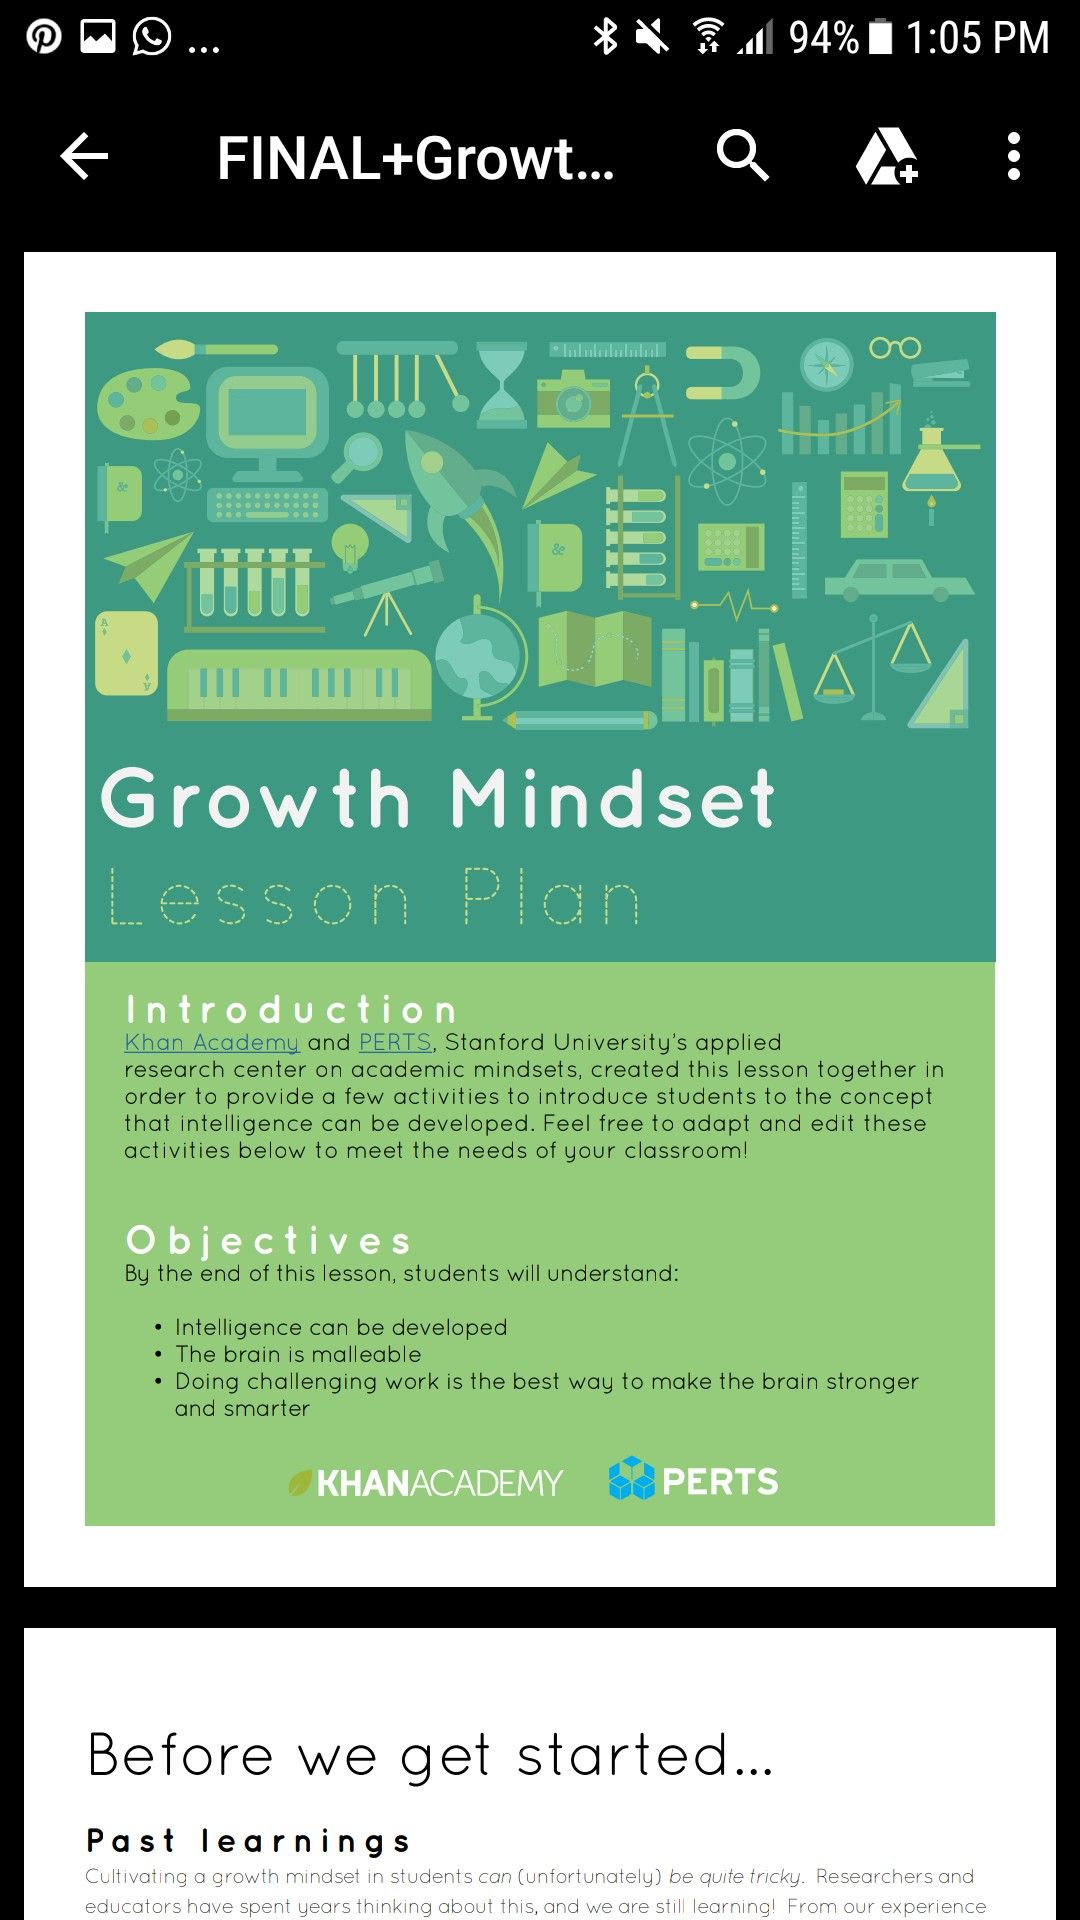 Lesson plan in emails. Growth mindset (With images